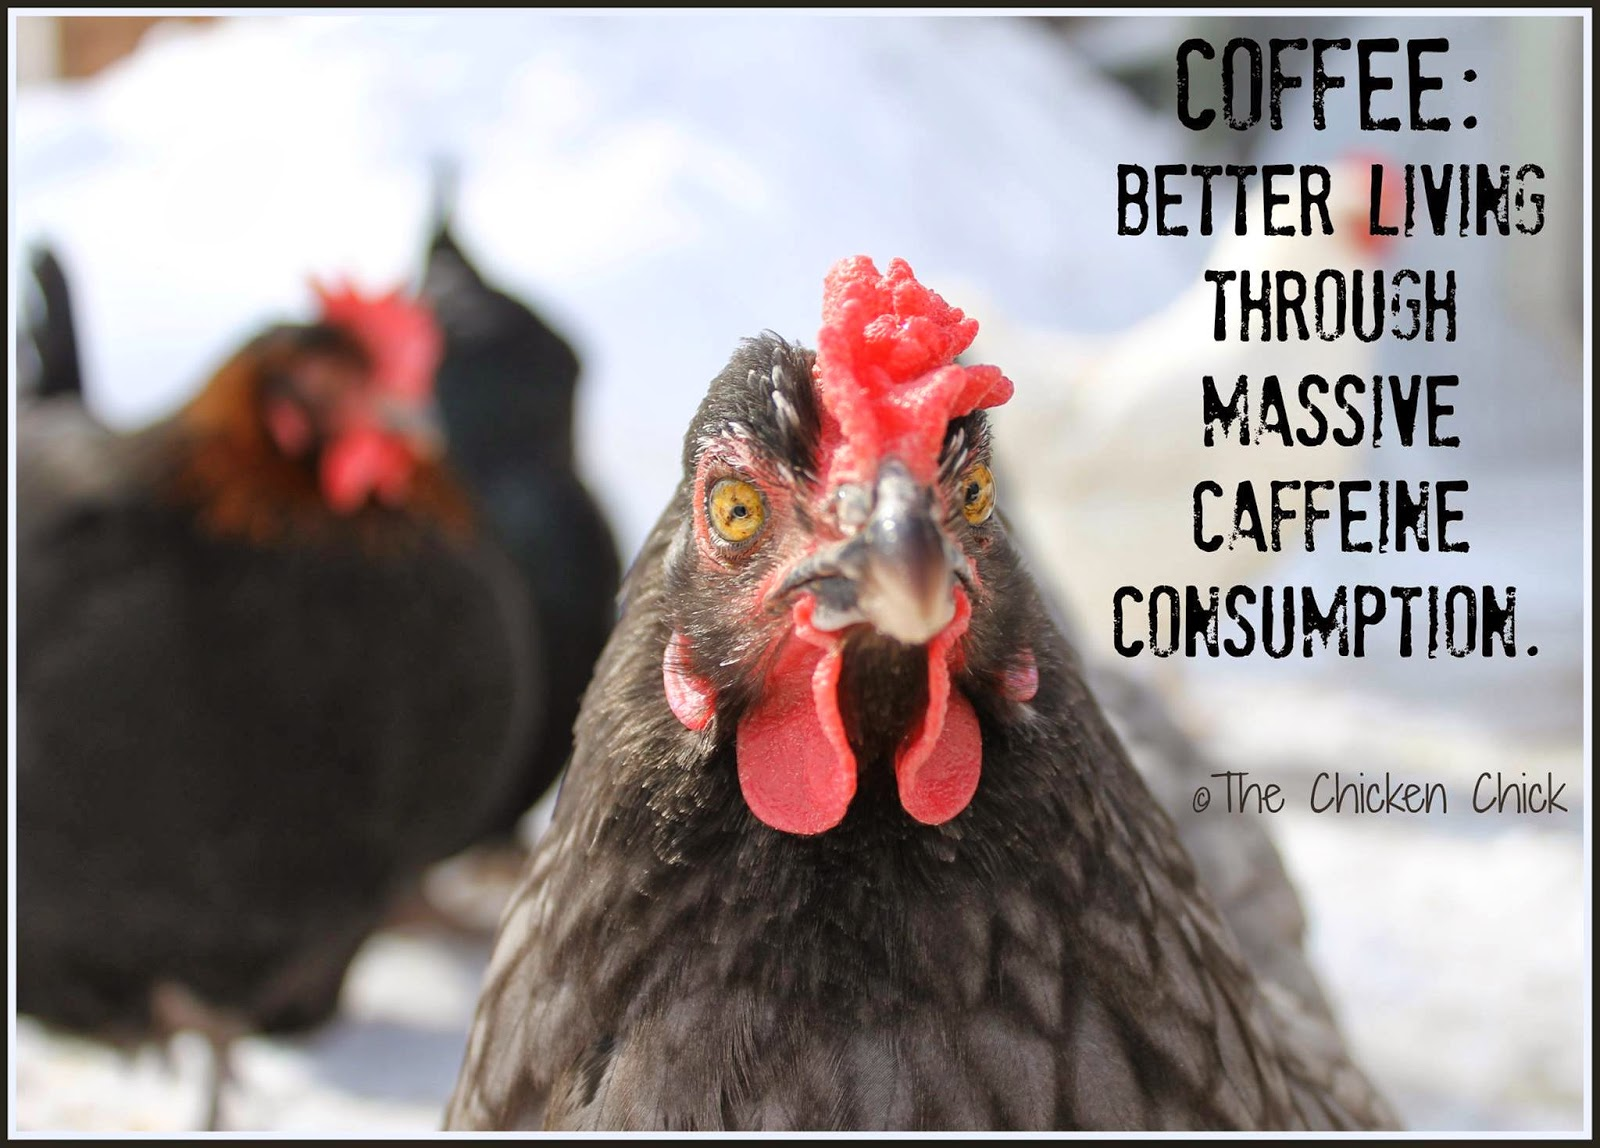 COFFEE: Better living through massive caffeine consumption.